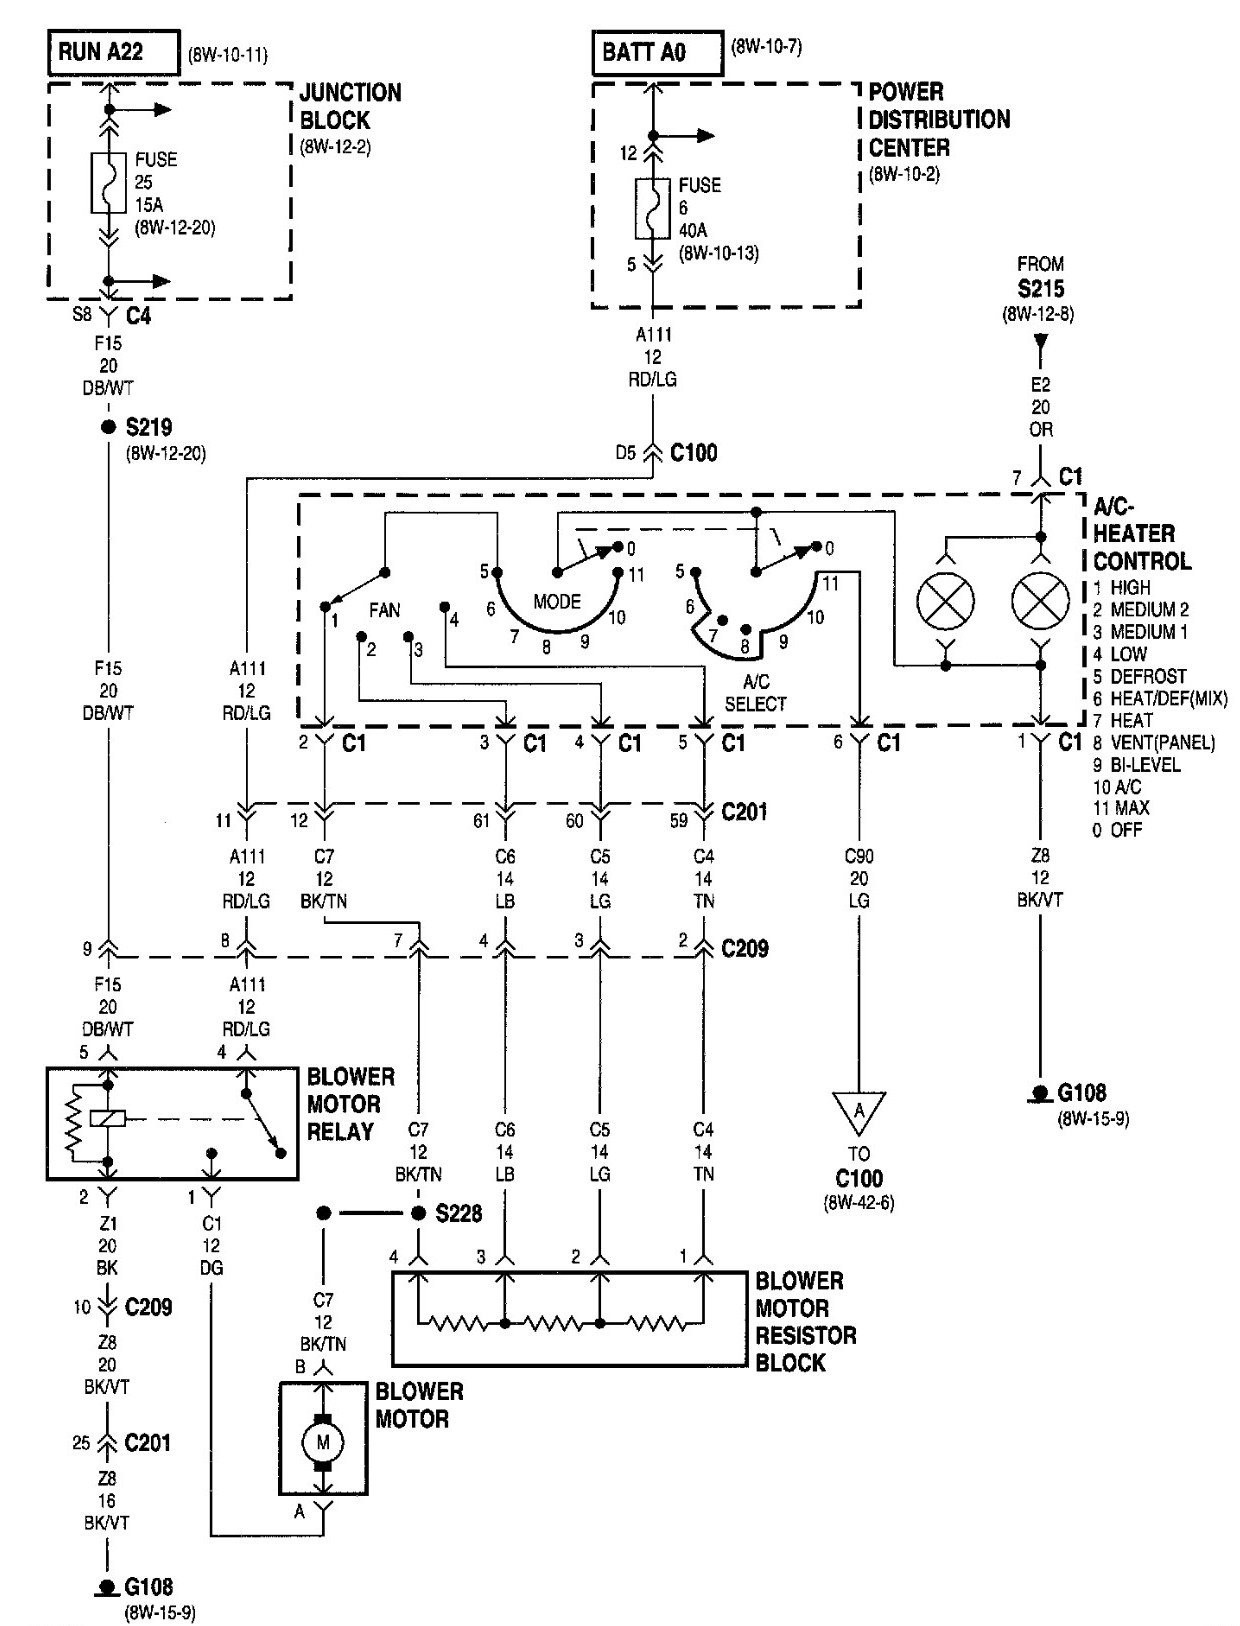 1999 jeep wrangler wiring diagram - wiring diagram book name-more -  name-more.prolocoisoletremiti.it  prolocoisoletremiti.it